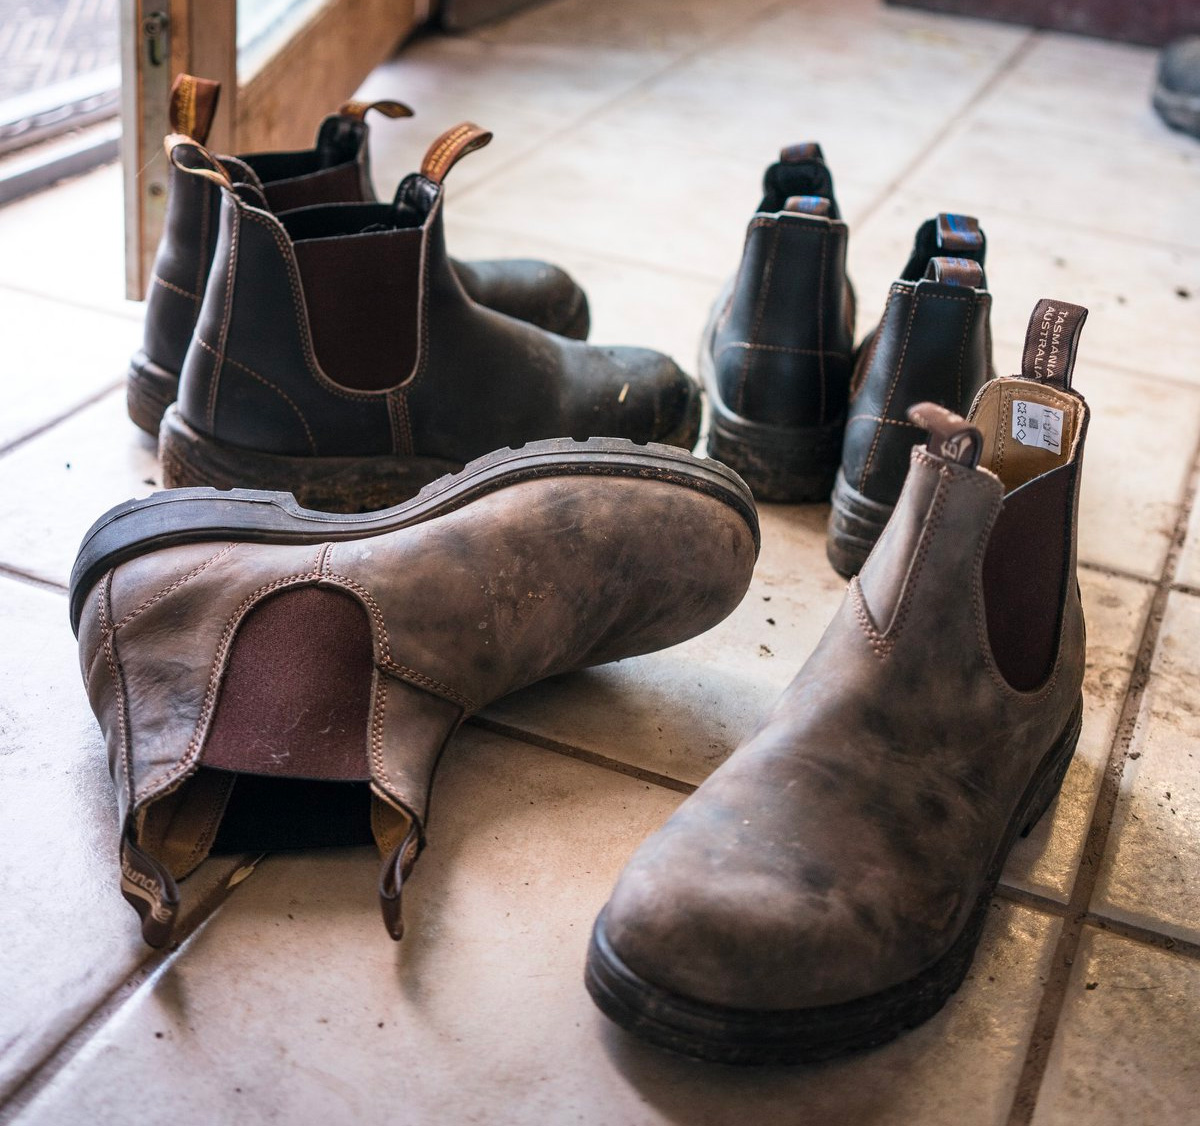 One Boot To Do-It-All: The Original Blundstone 500 at werd.com